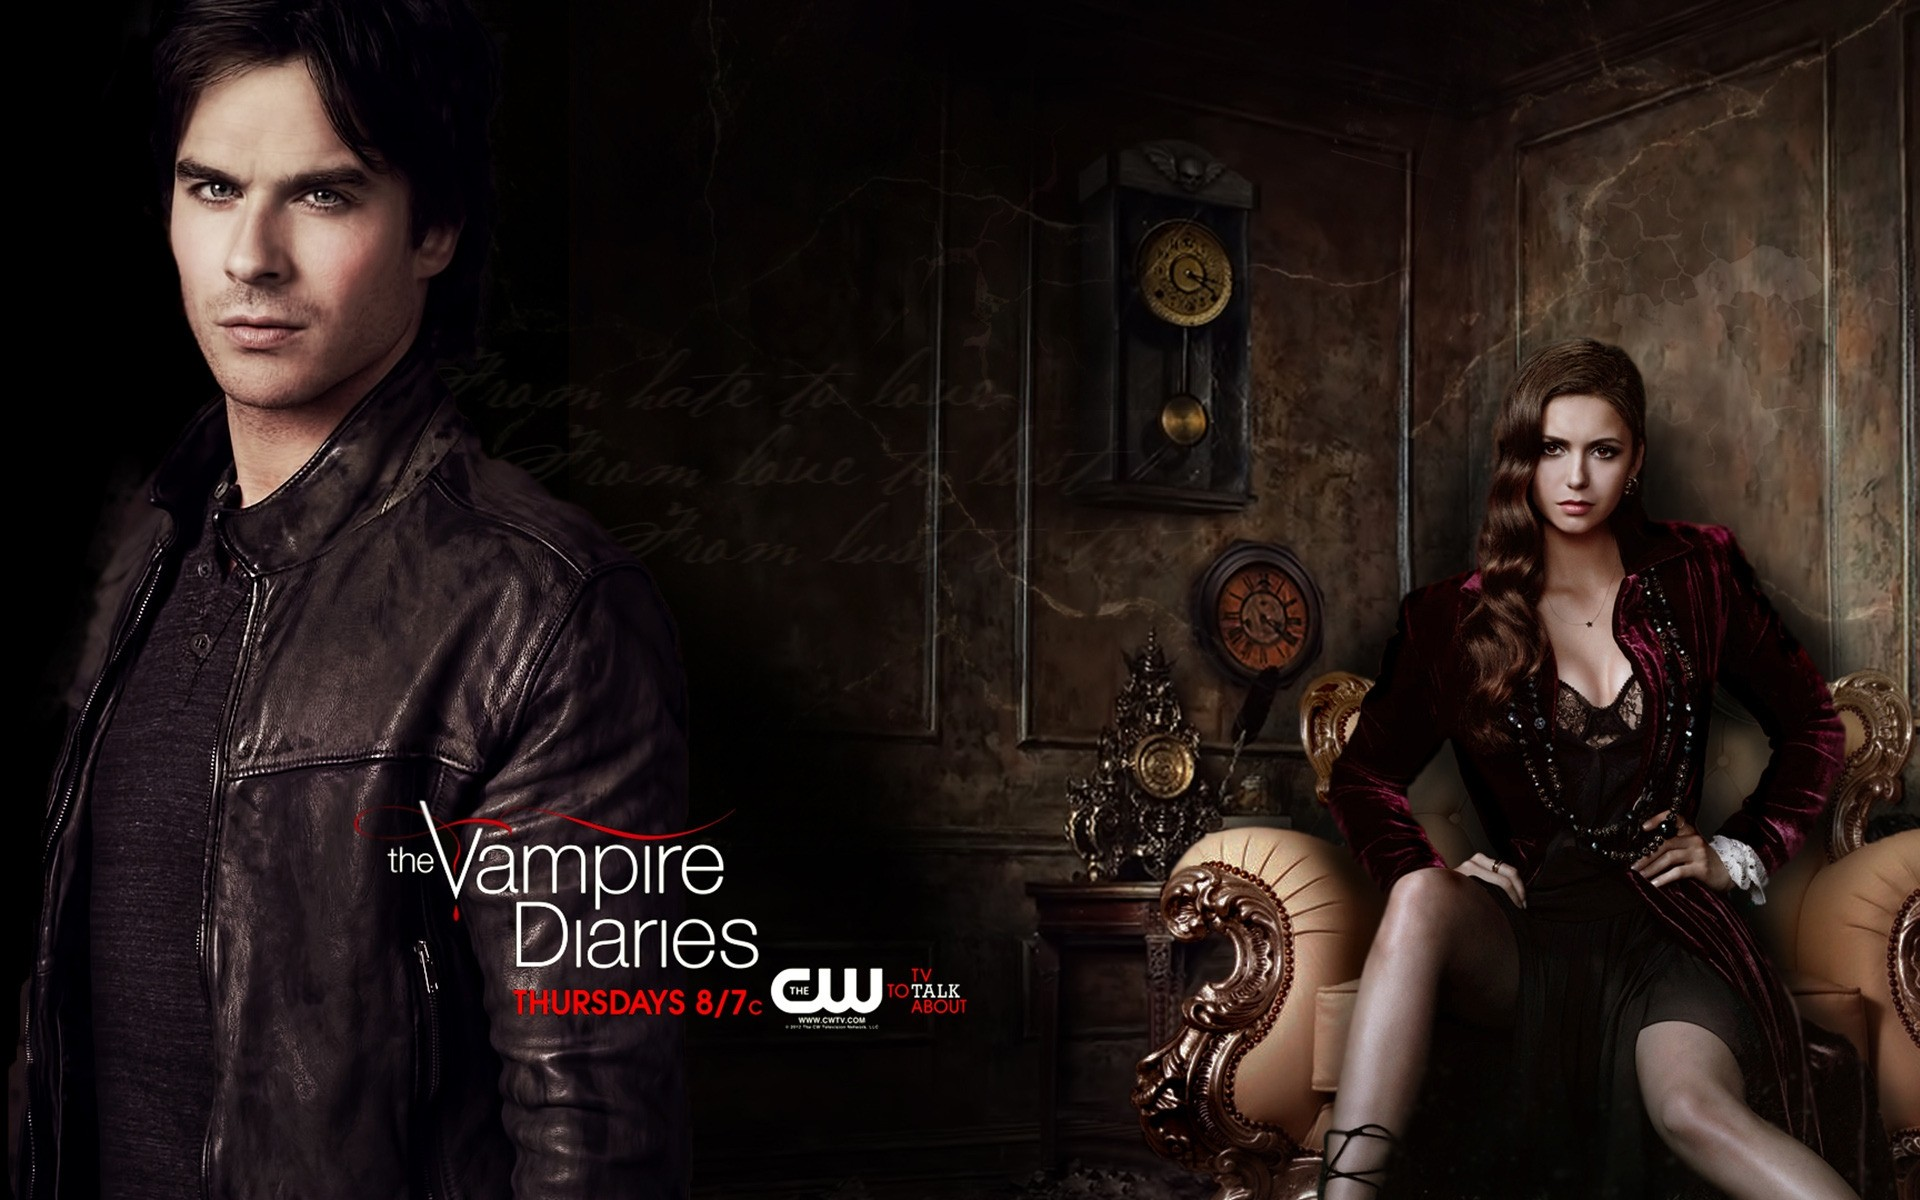 The vampire diaries season 4 android wallpapers for free voltagebd Gallery